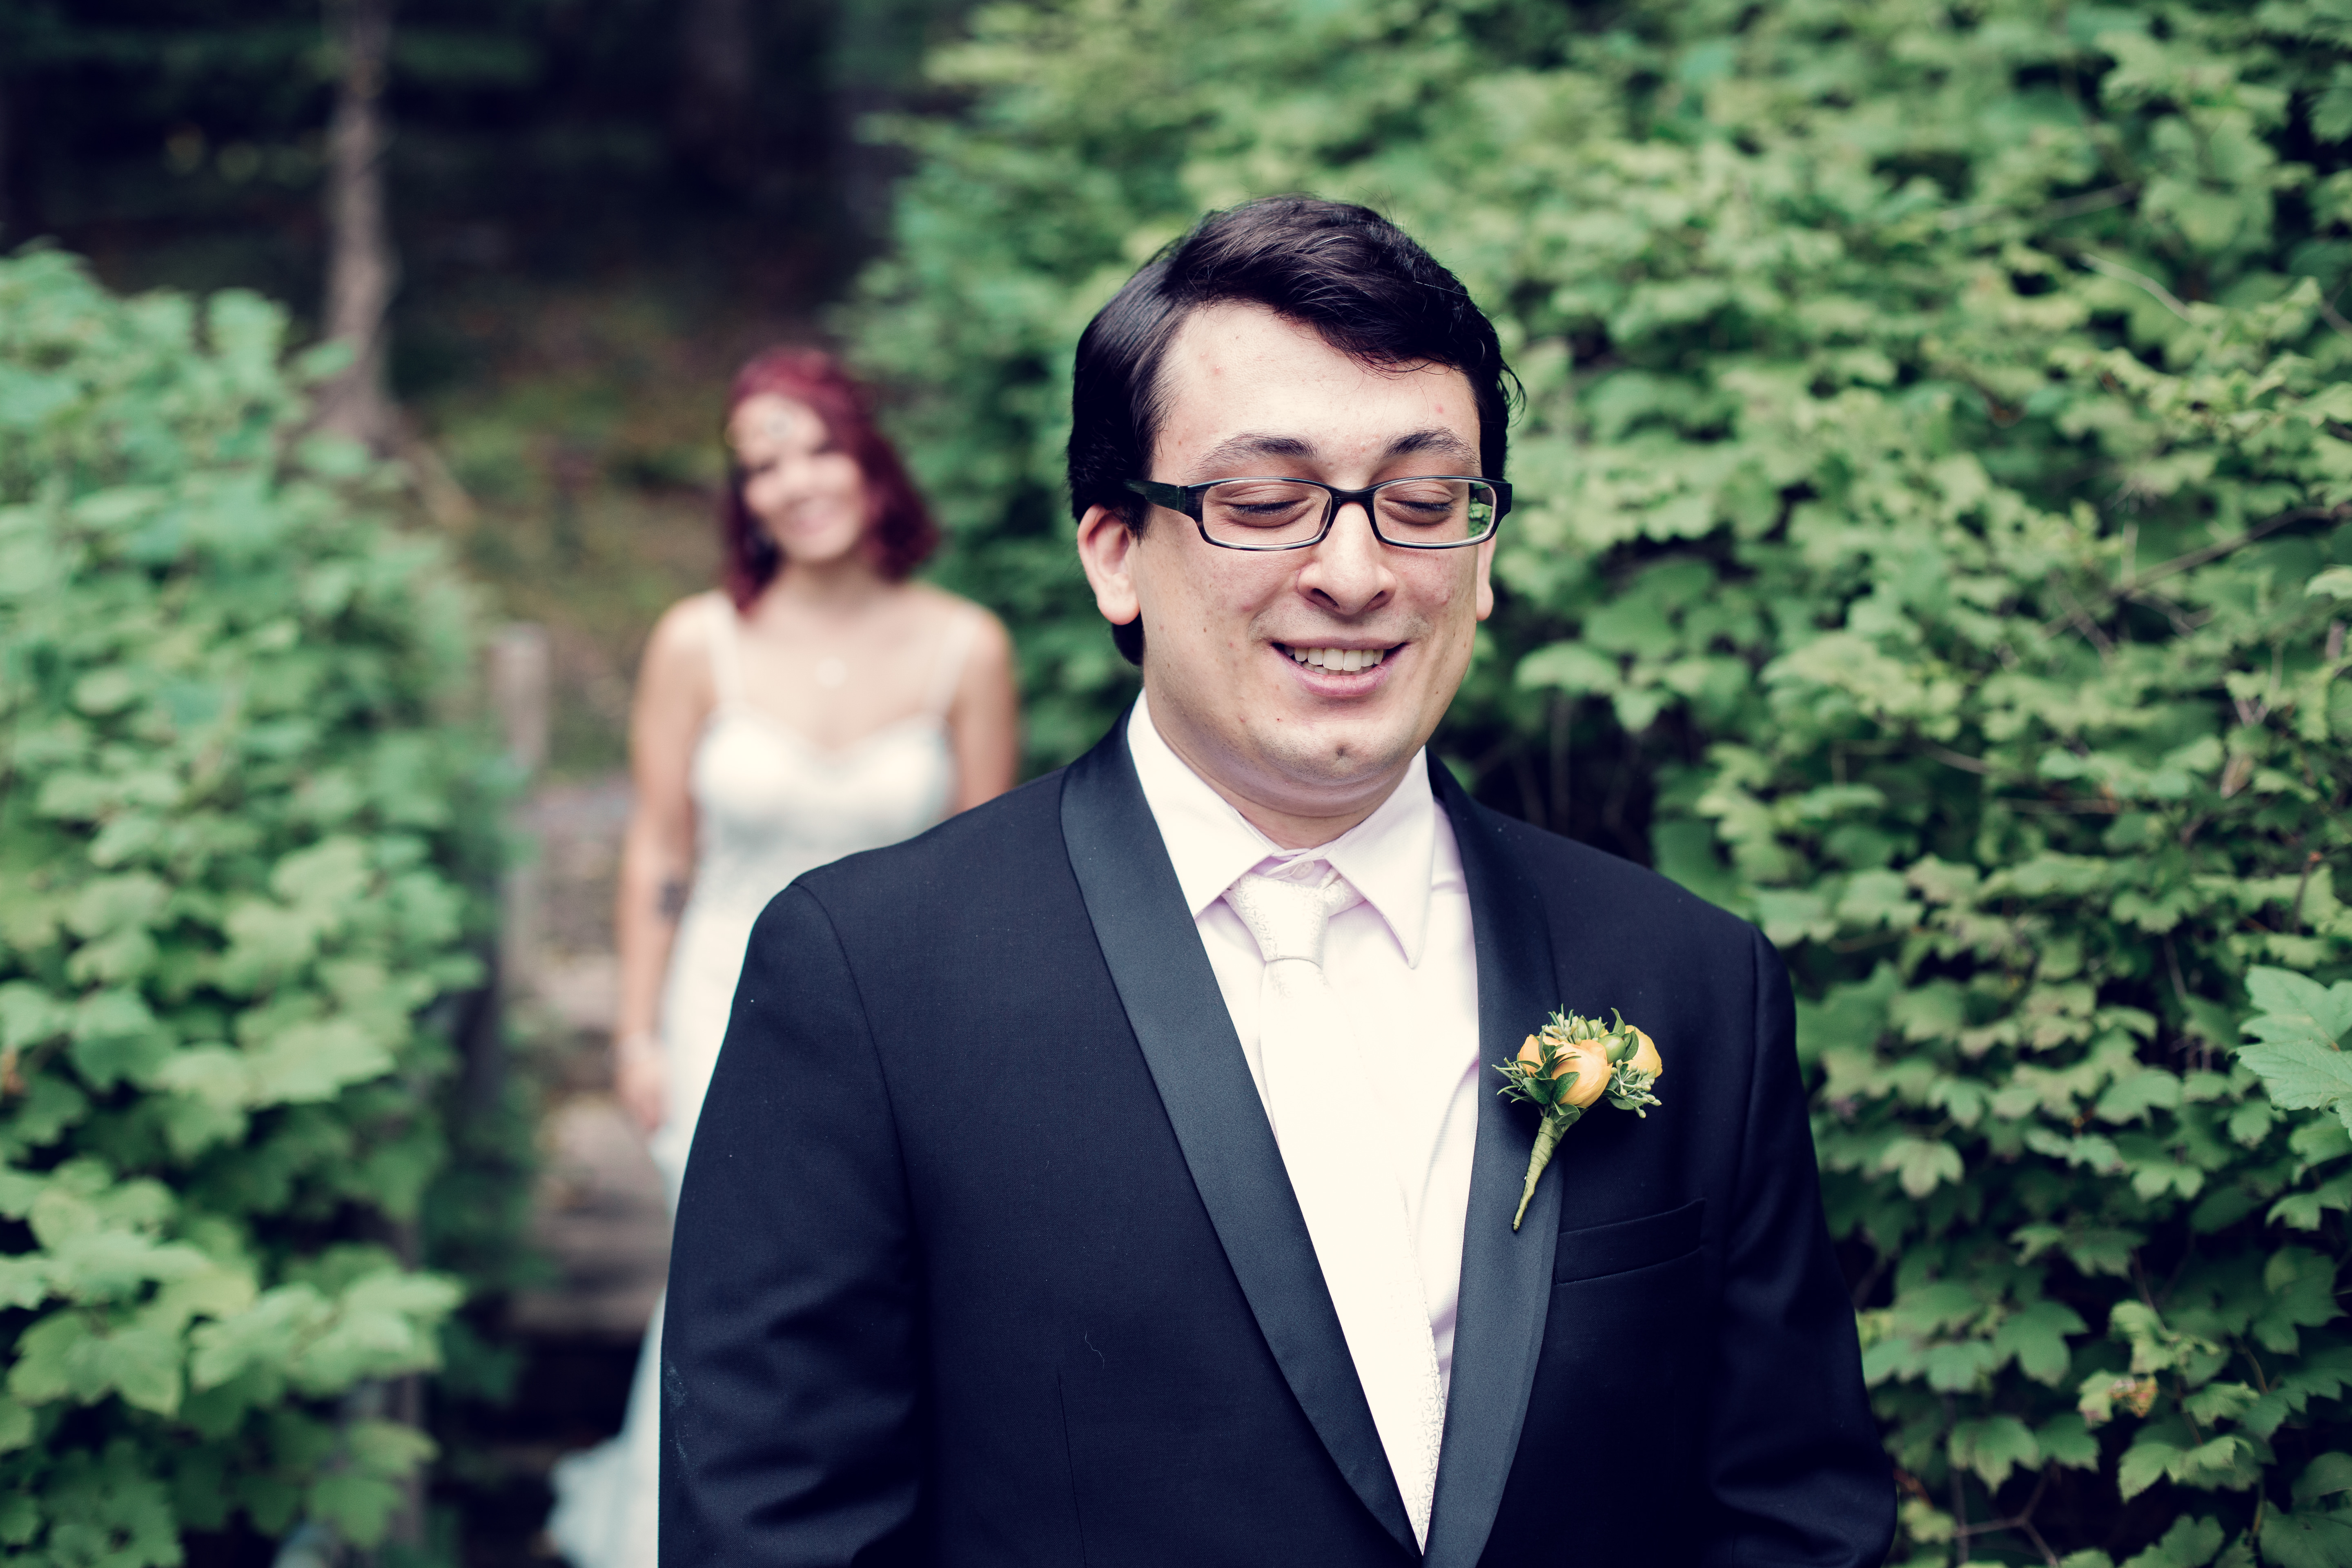 Wedding Photography in Hudson Valley